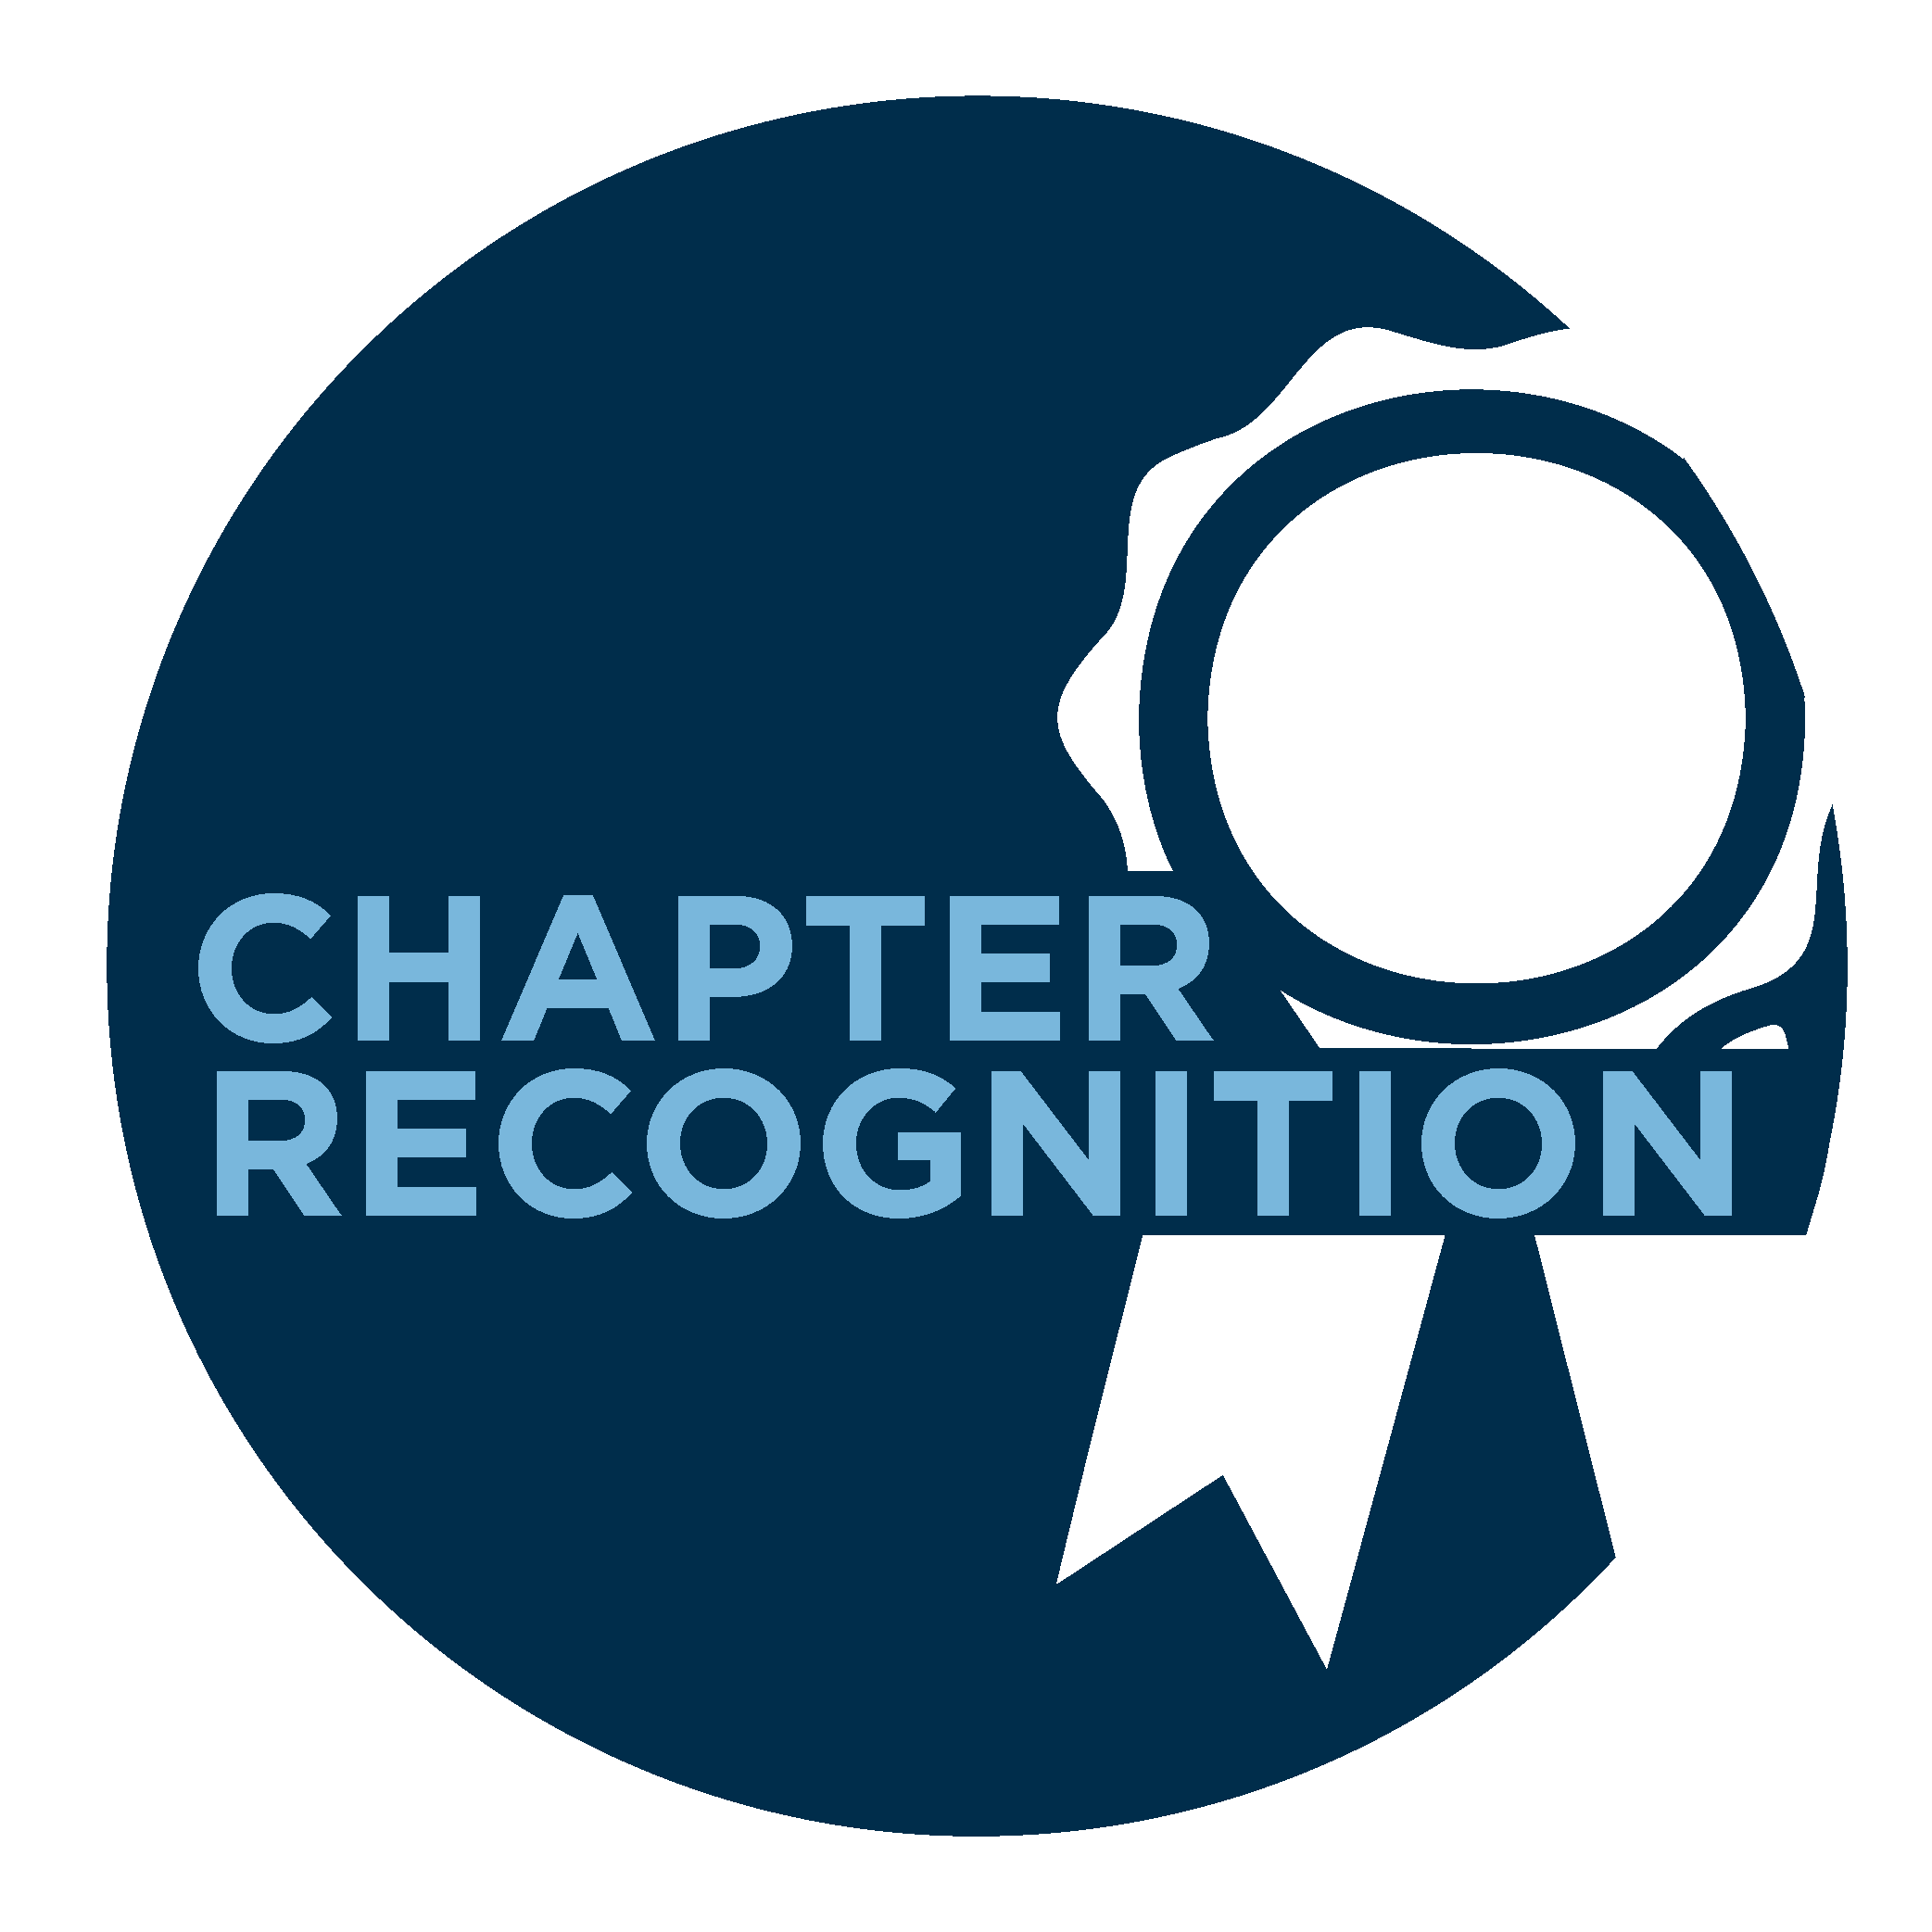 chapter recognition